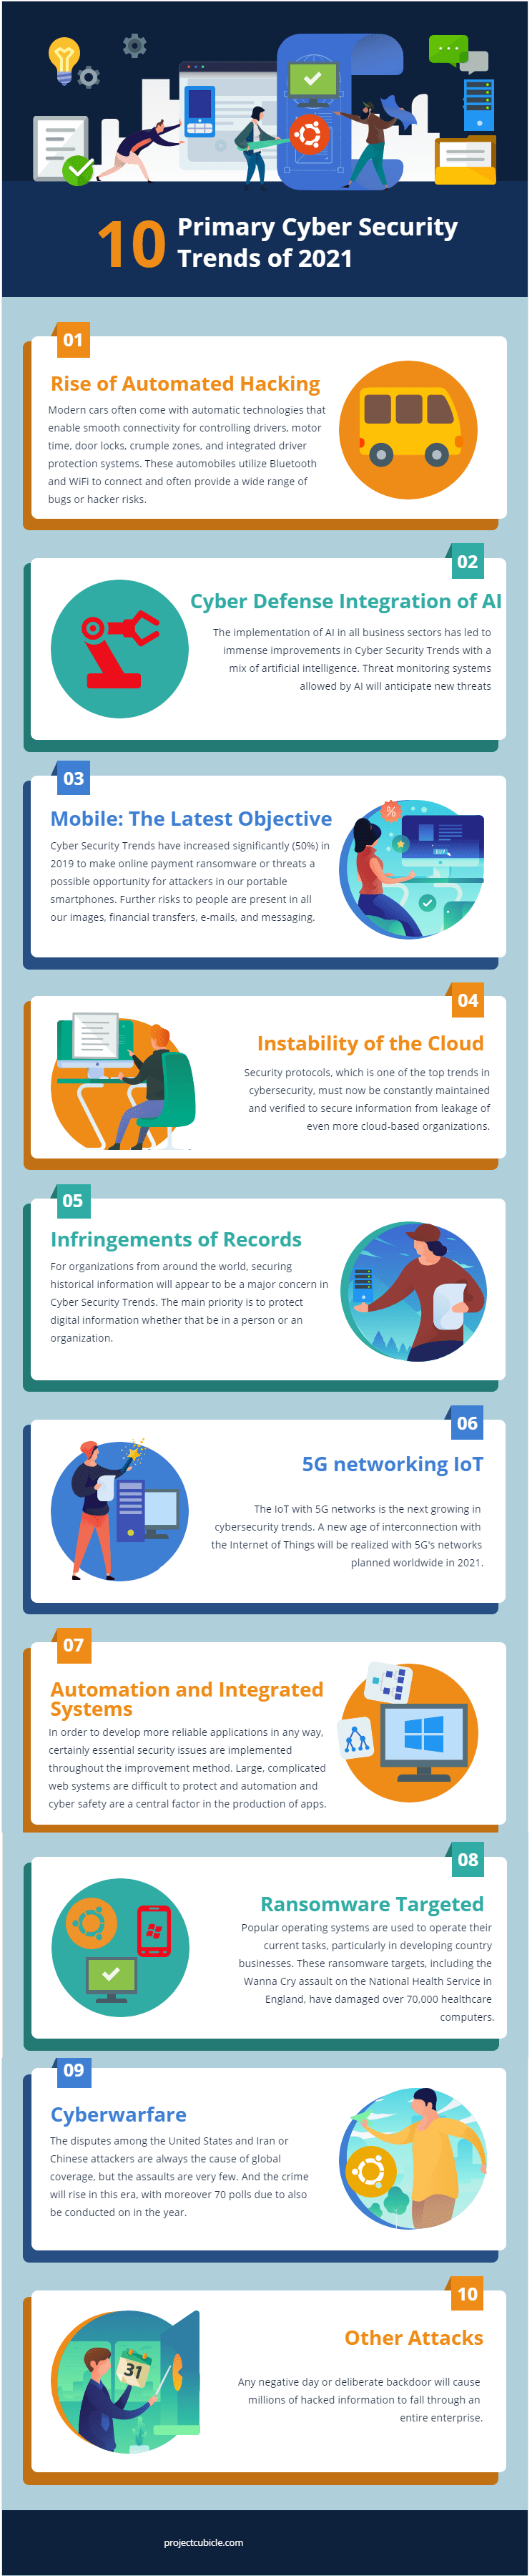 10 Primary Cyber Security Trends of 2021 infographic-min